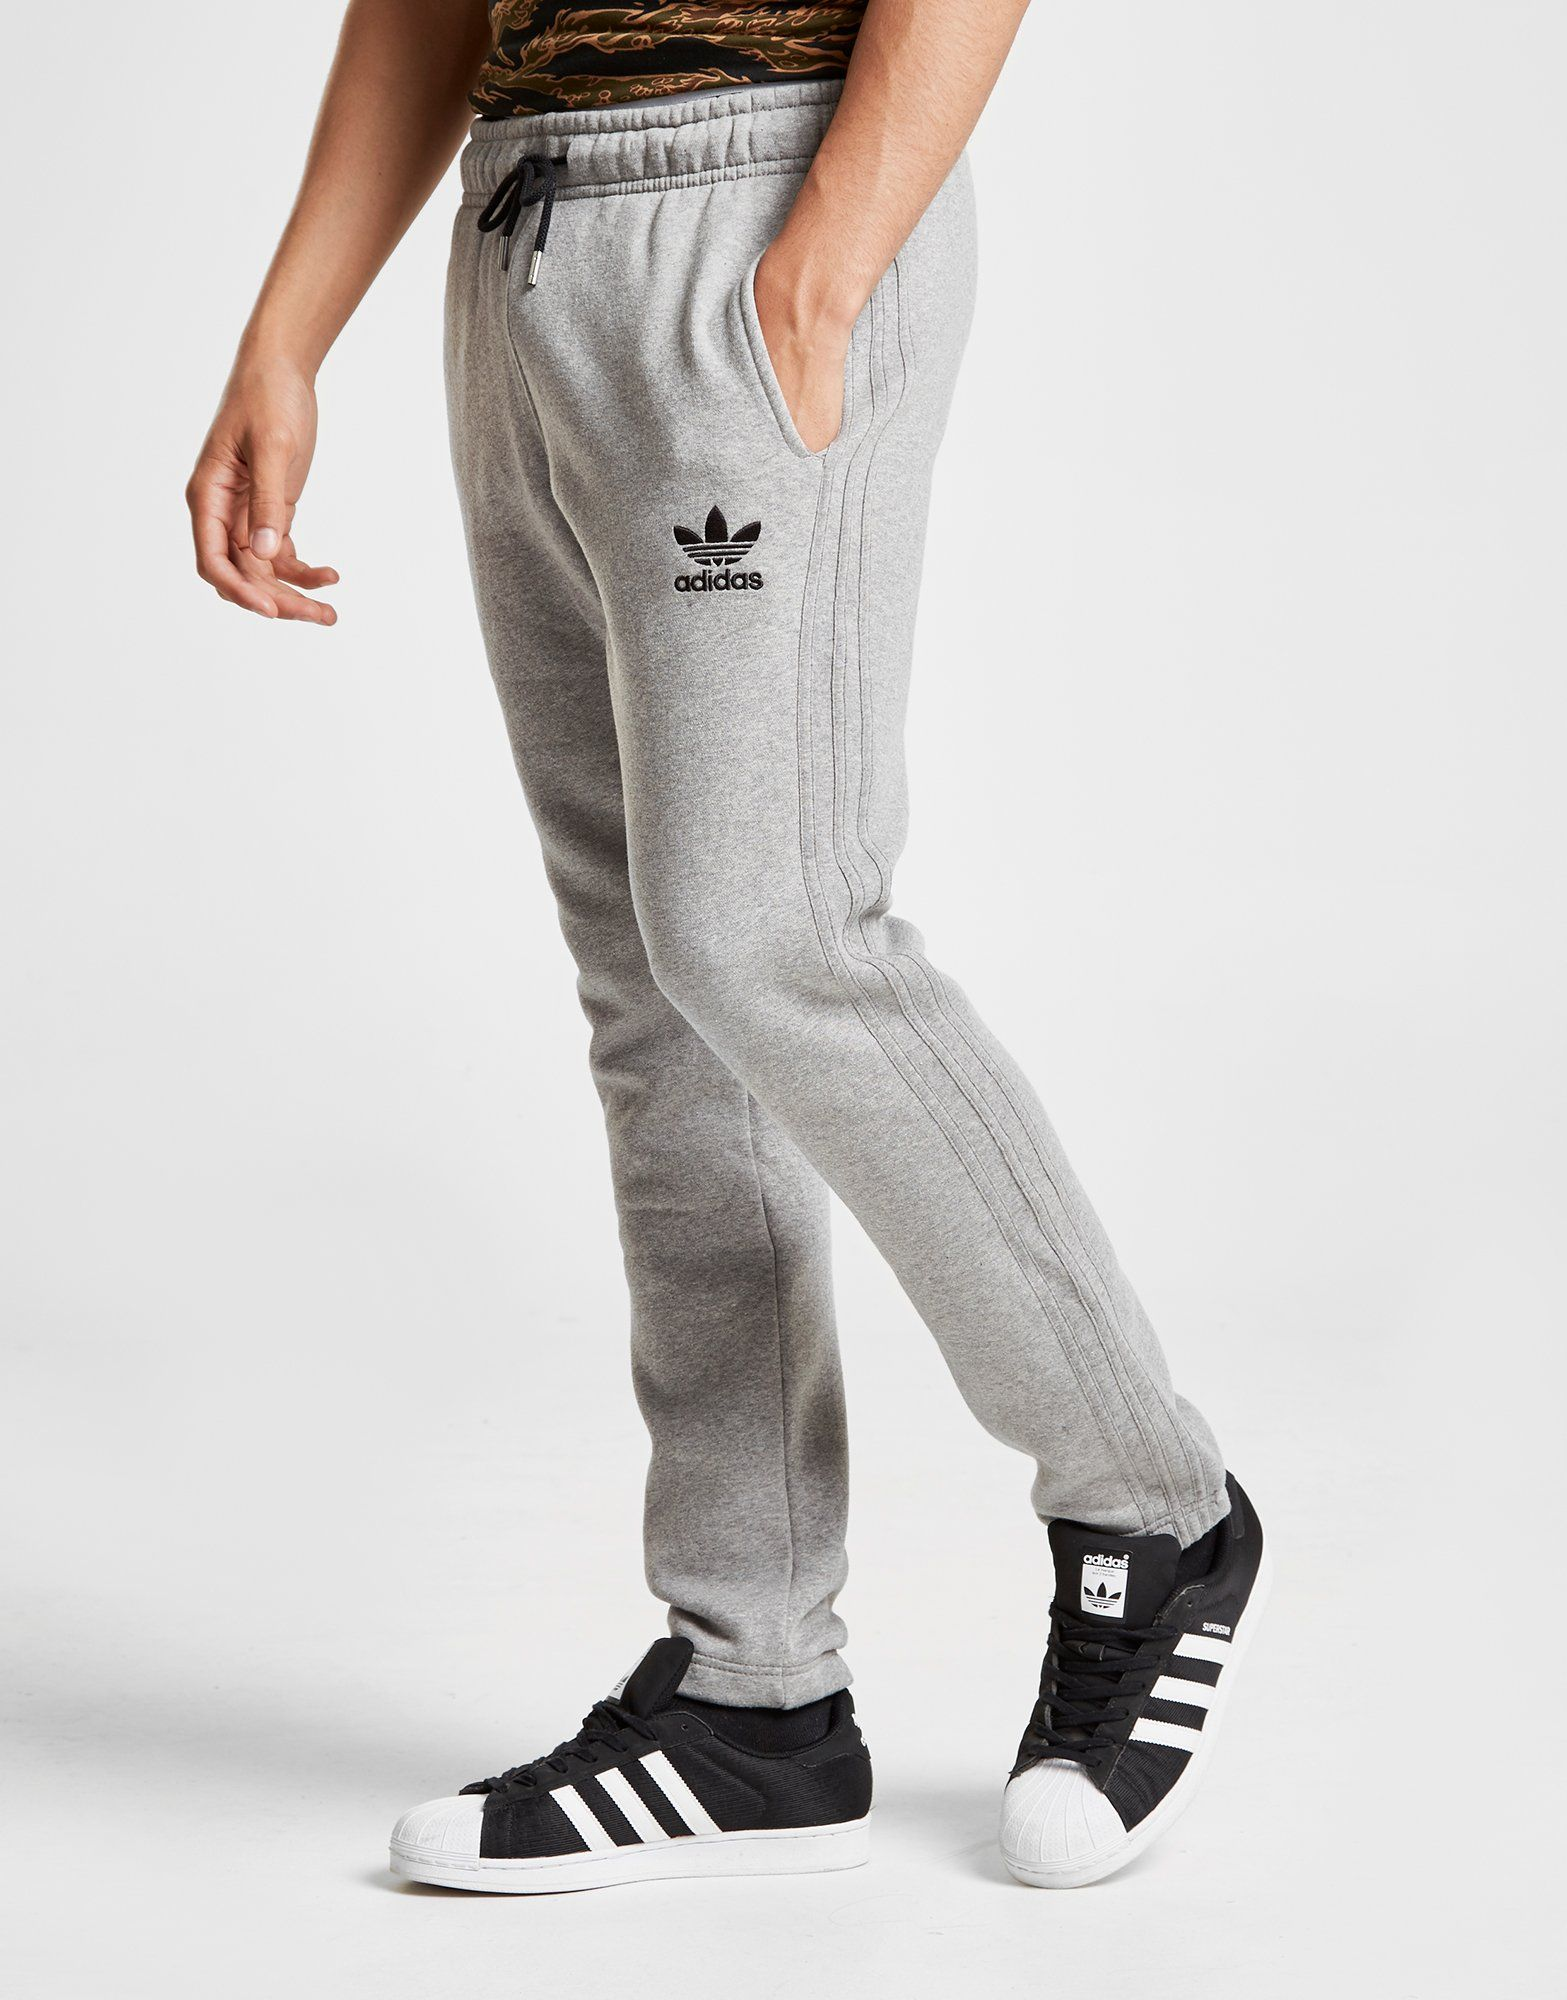 81bc375d Grey Adidas Tracksuit With White Stripes thehampsteadfactory.co.uk